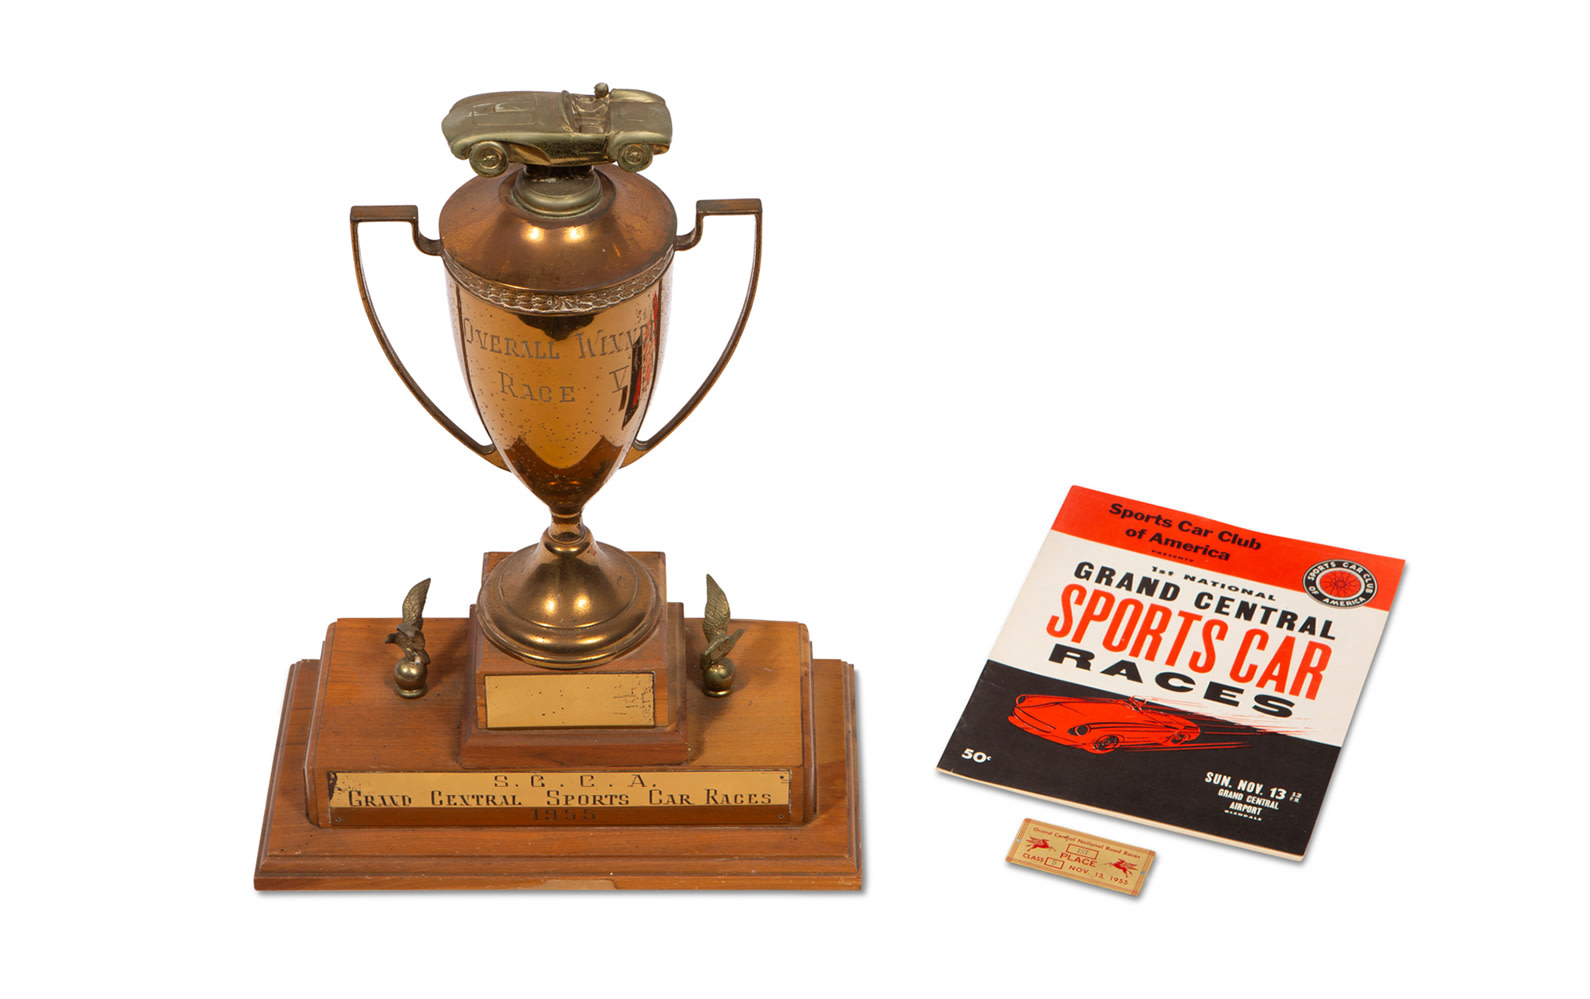 1955 Grand Central Sports Car Races Trophy, 1st Place Finishers Badge, and Official Program